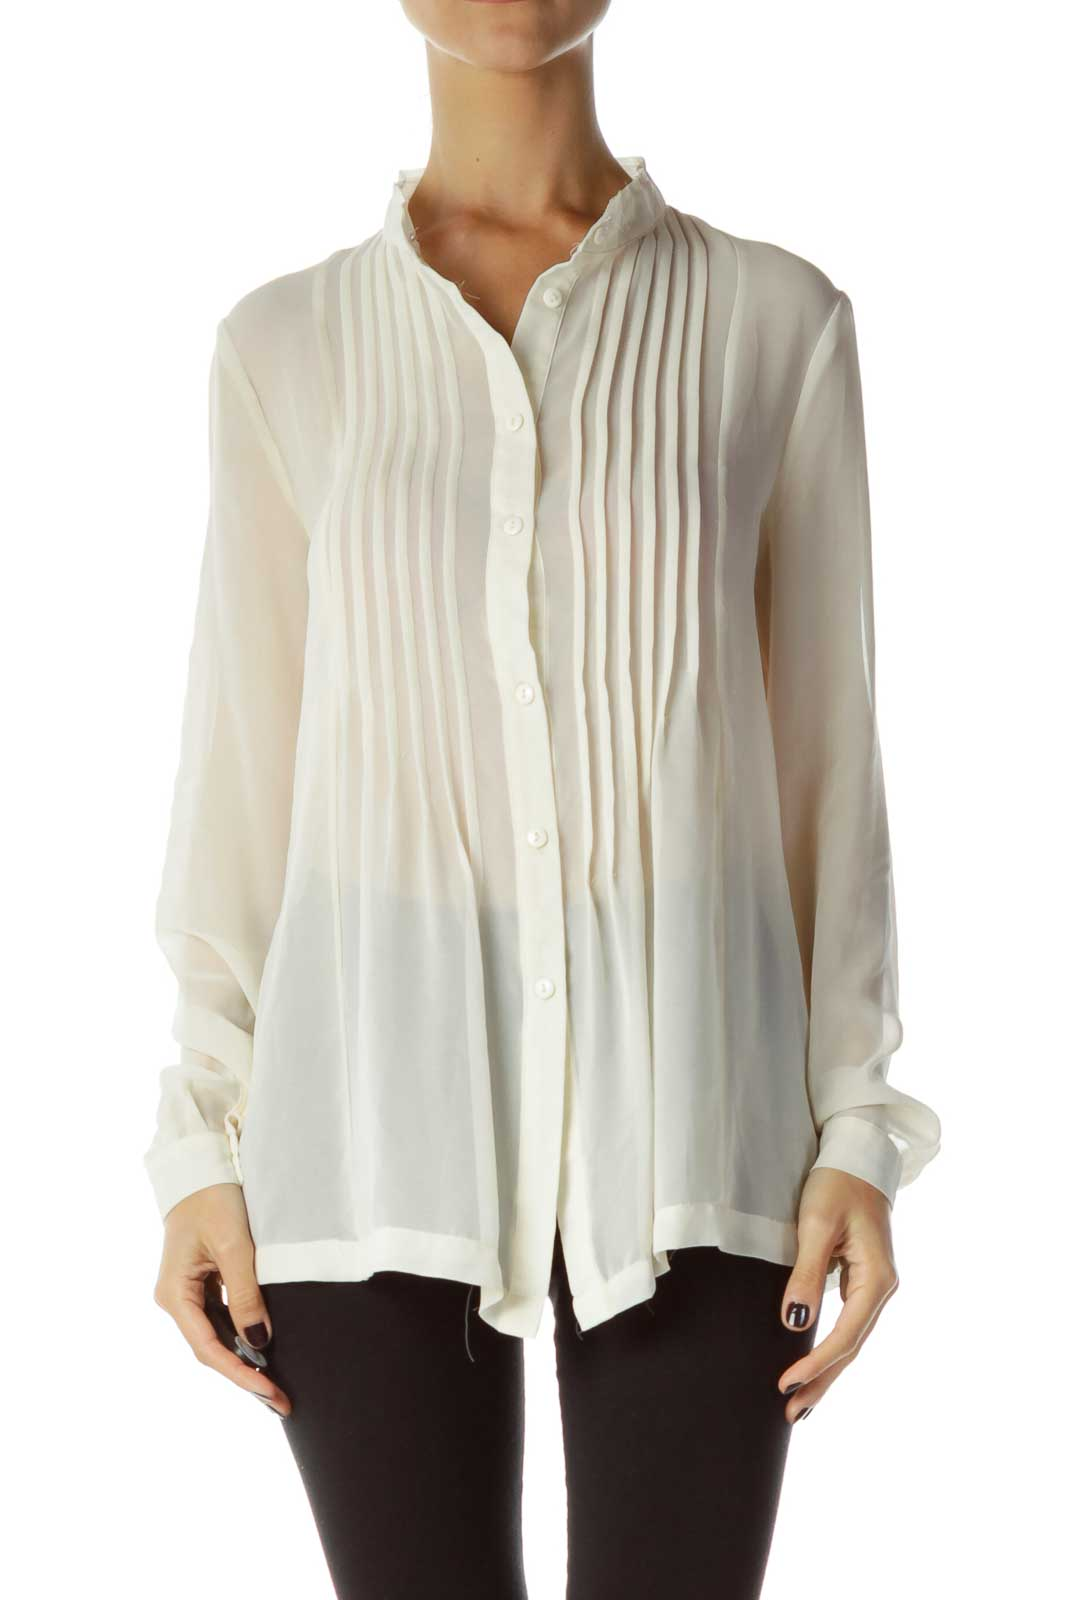 Cream Sheer Button Up Shirt Front